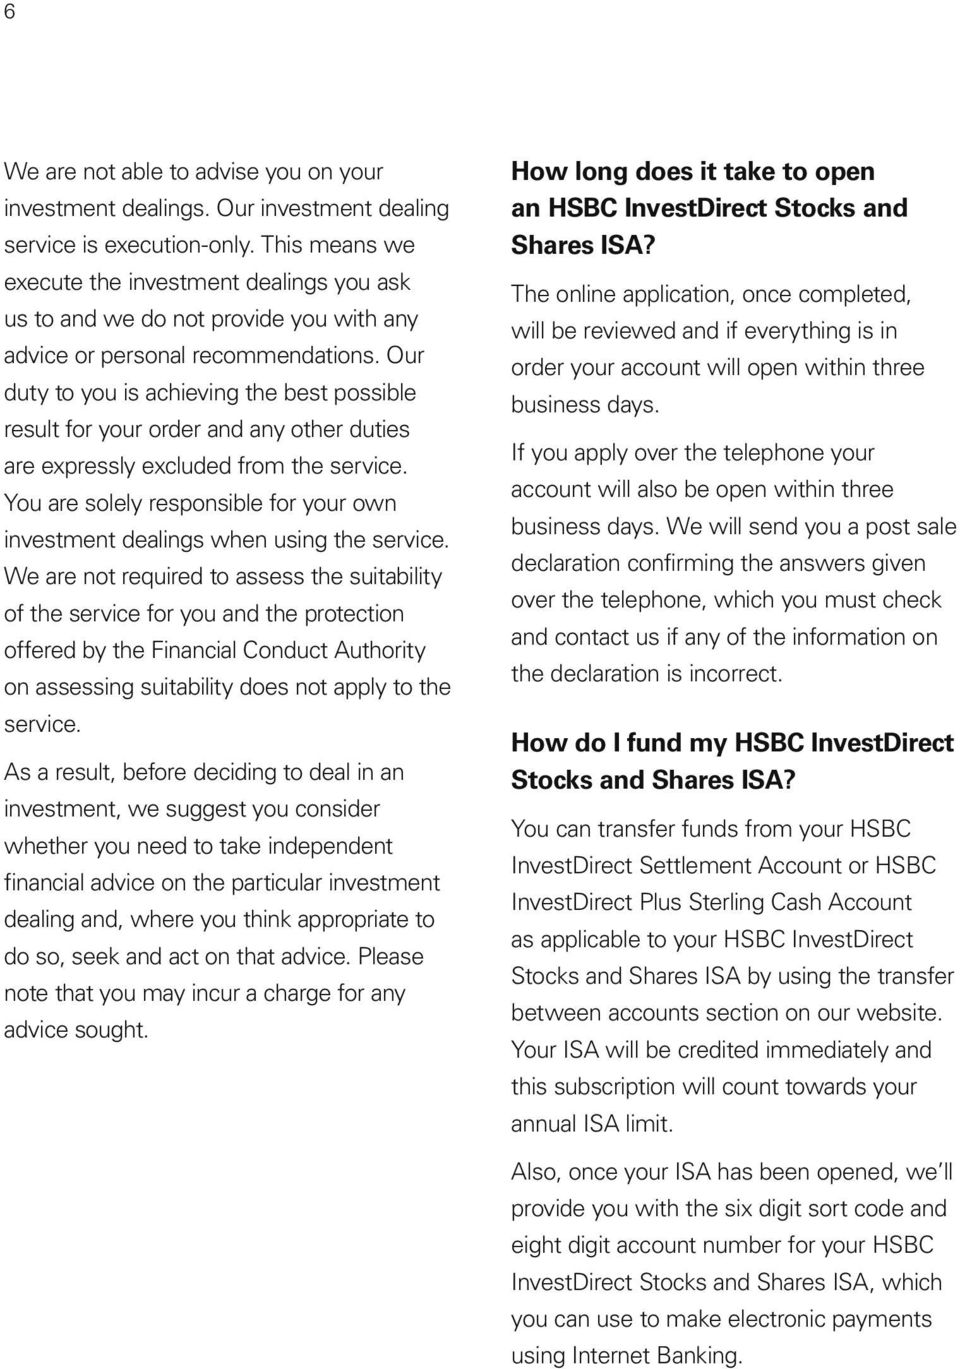 Key features of the HSBC InvestDirect Stocks and Shares ISA